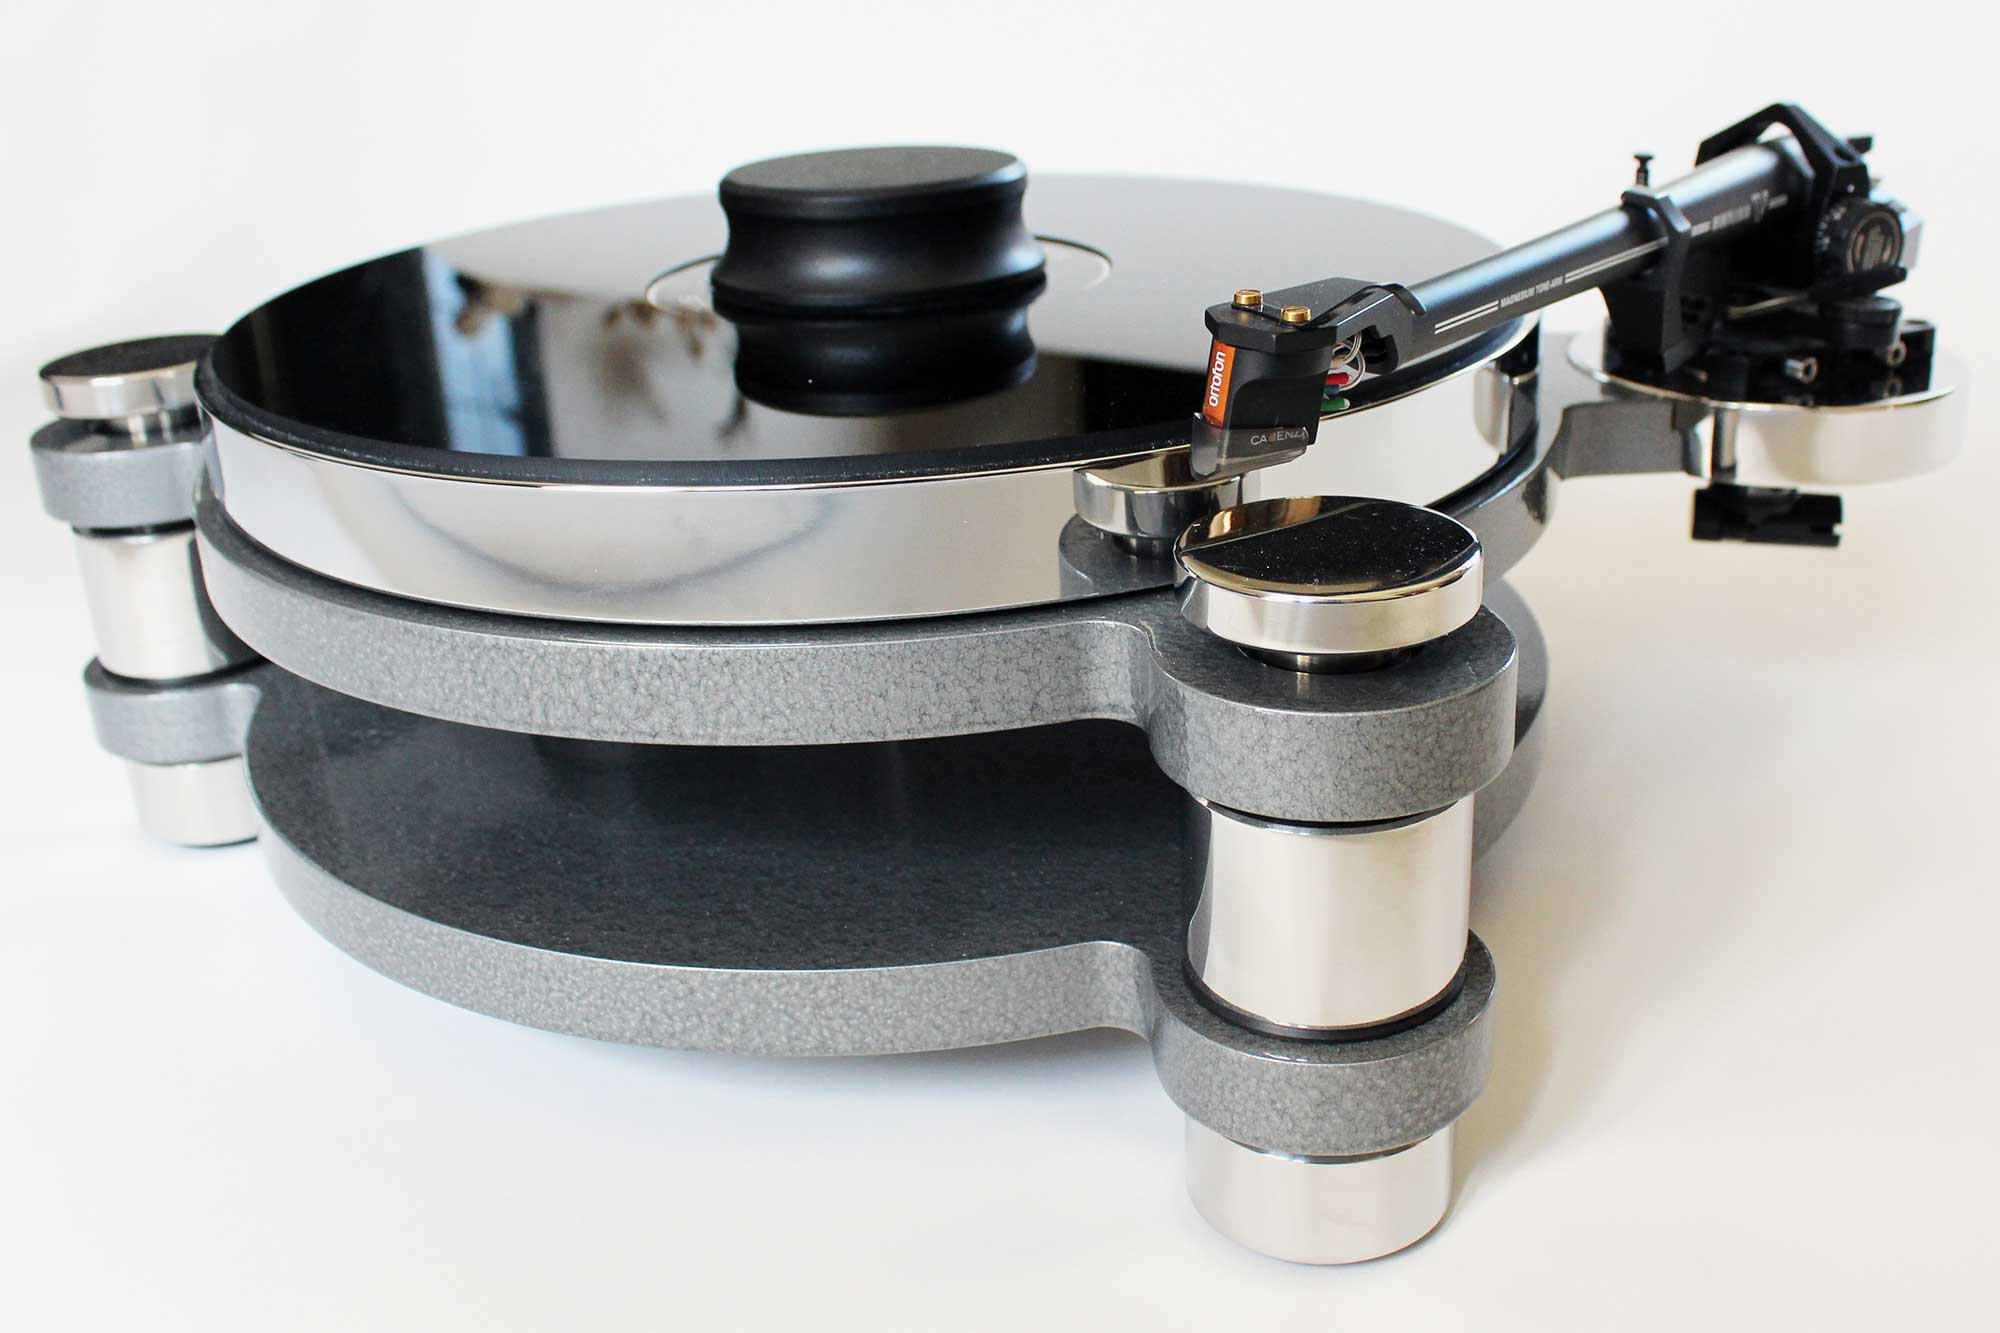 A select range of new and approved used HiFi and audio equipment